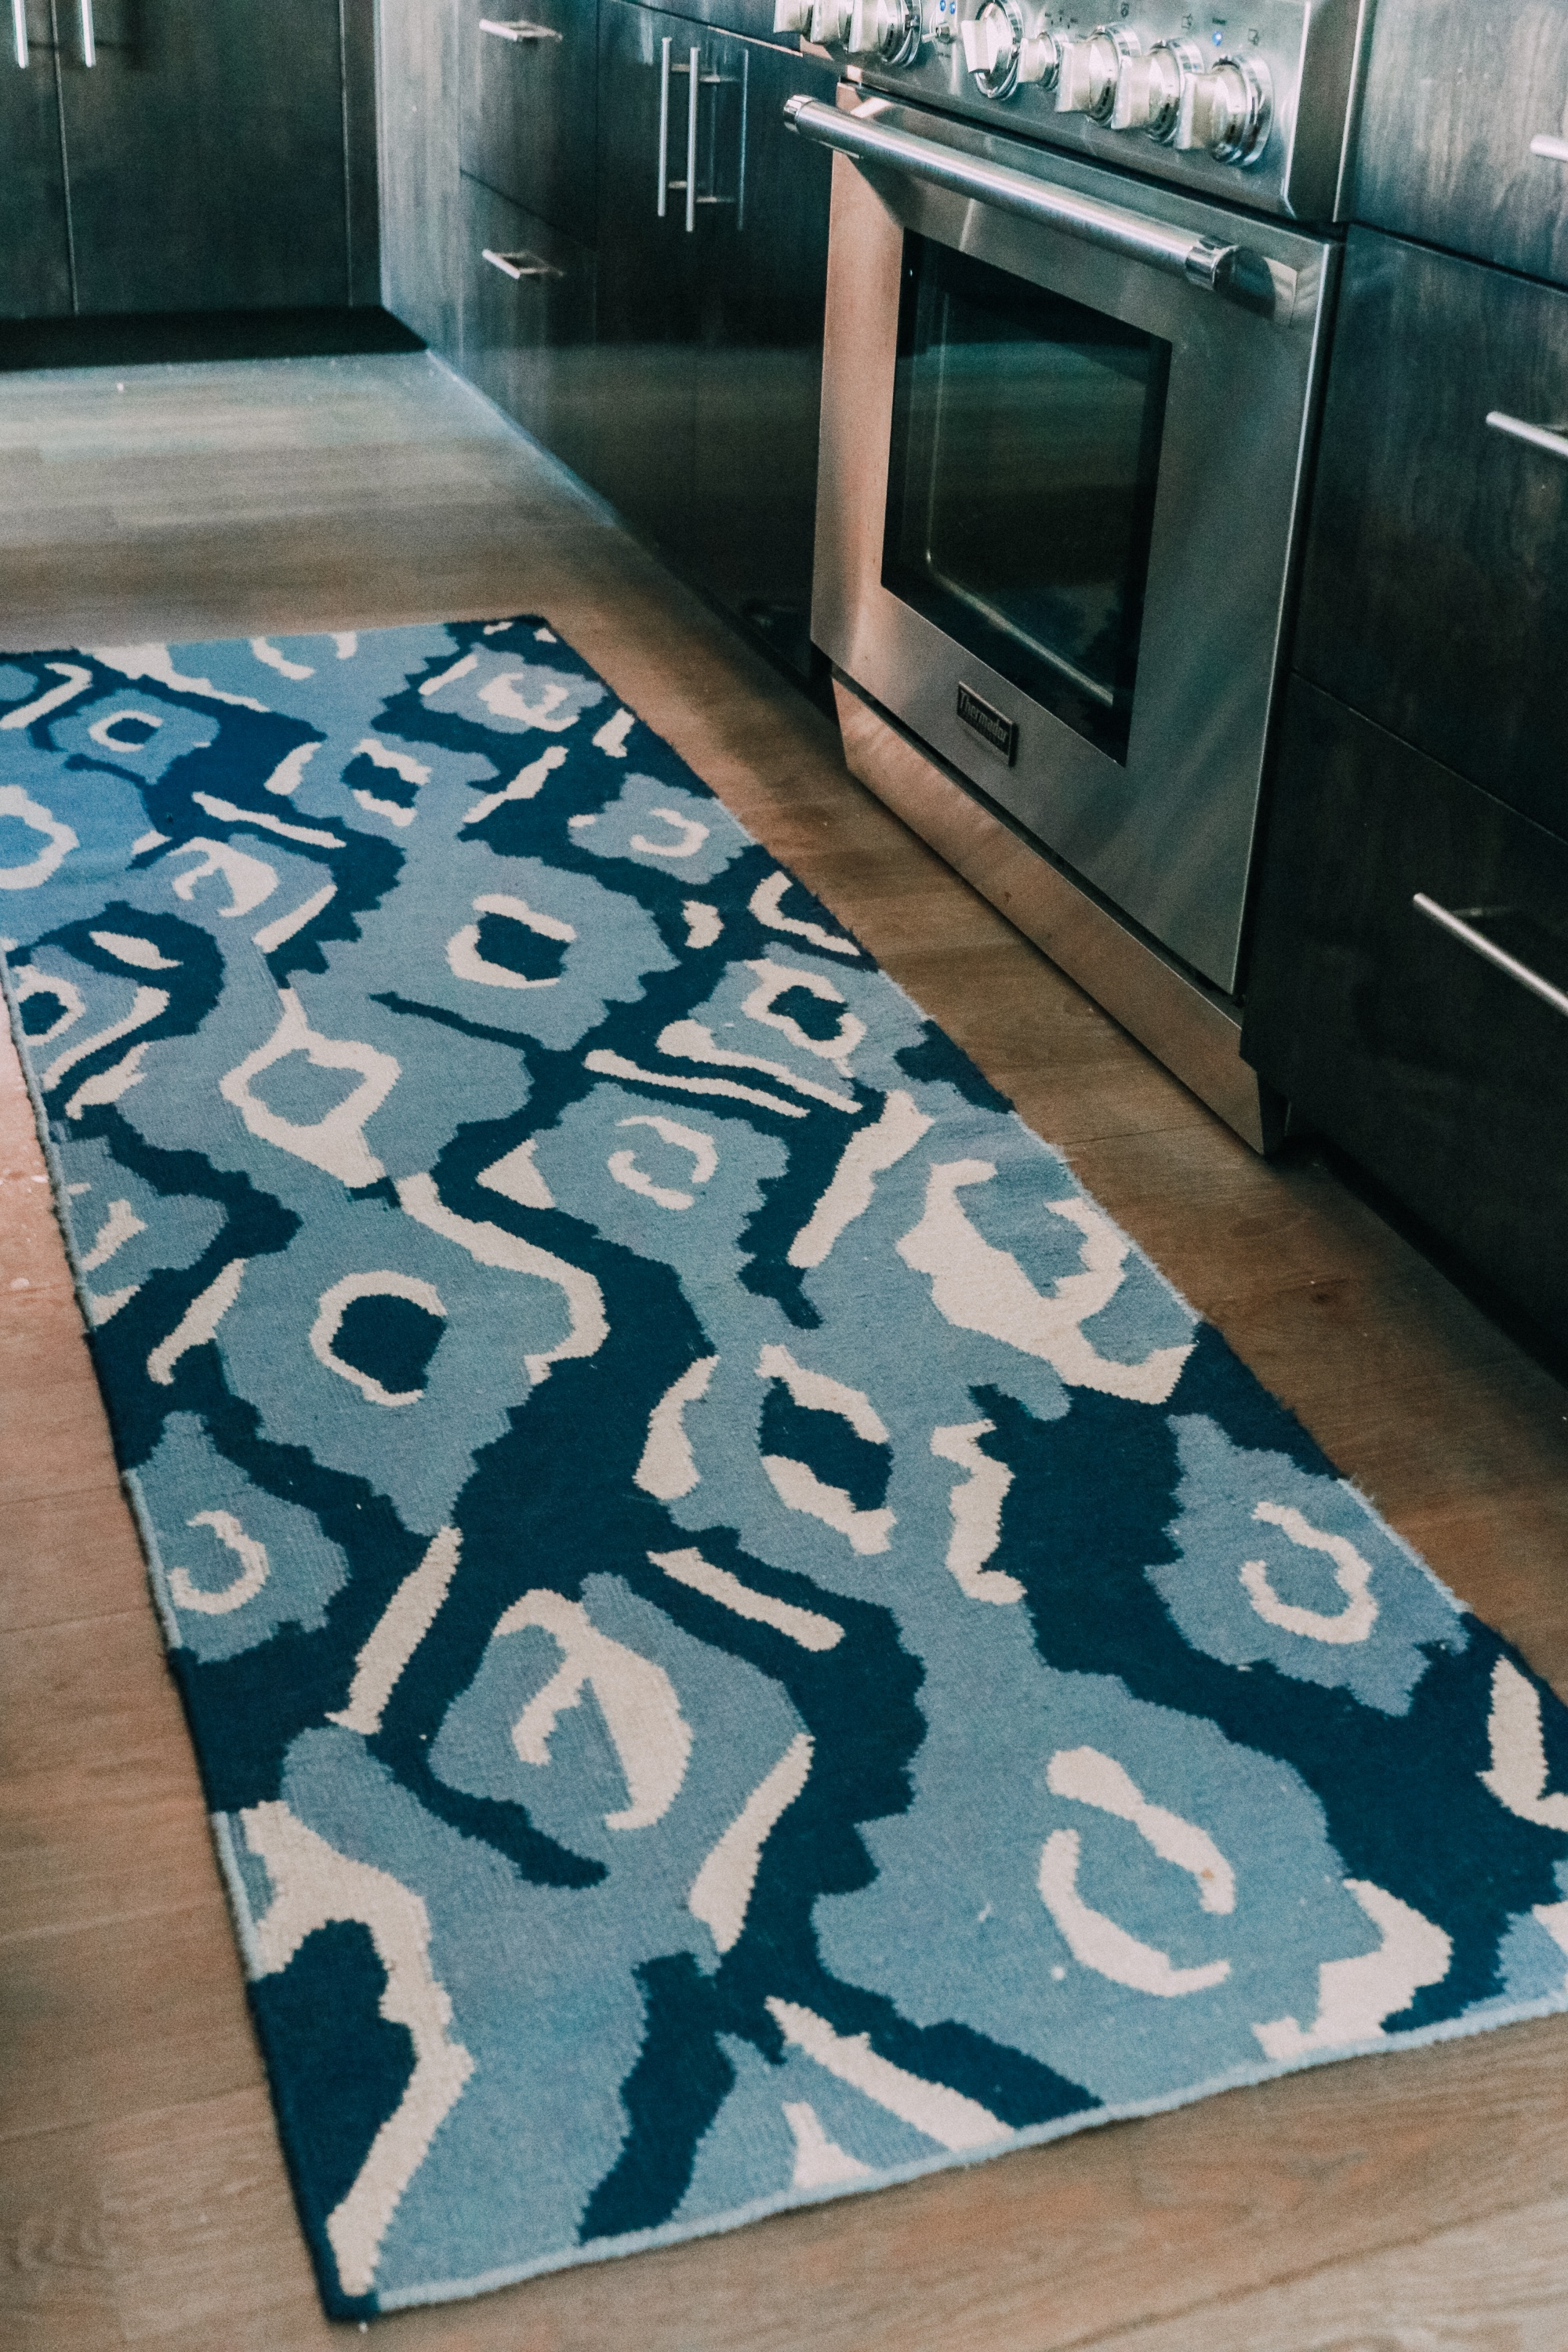 blue and white ikat kitchen rug runner by stove House Tour modern mountain townhome Telluride Colorado